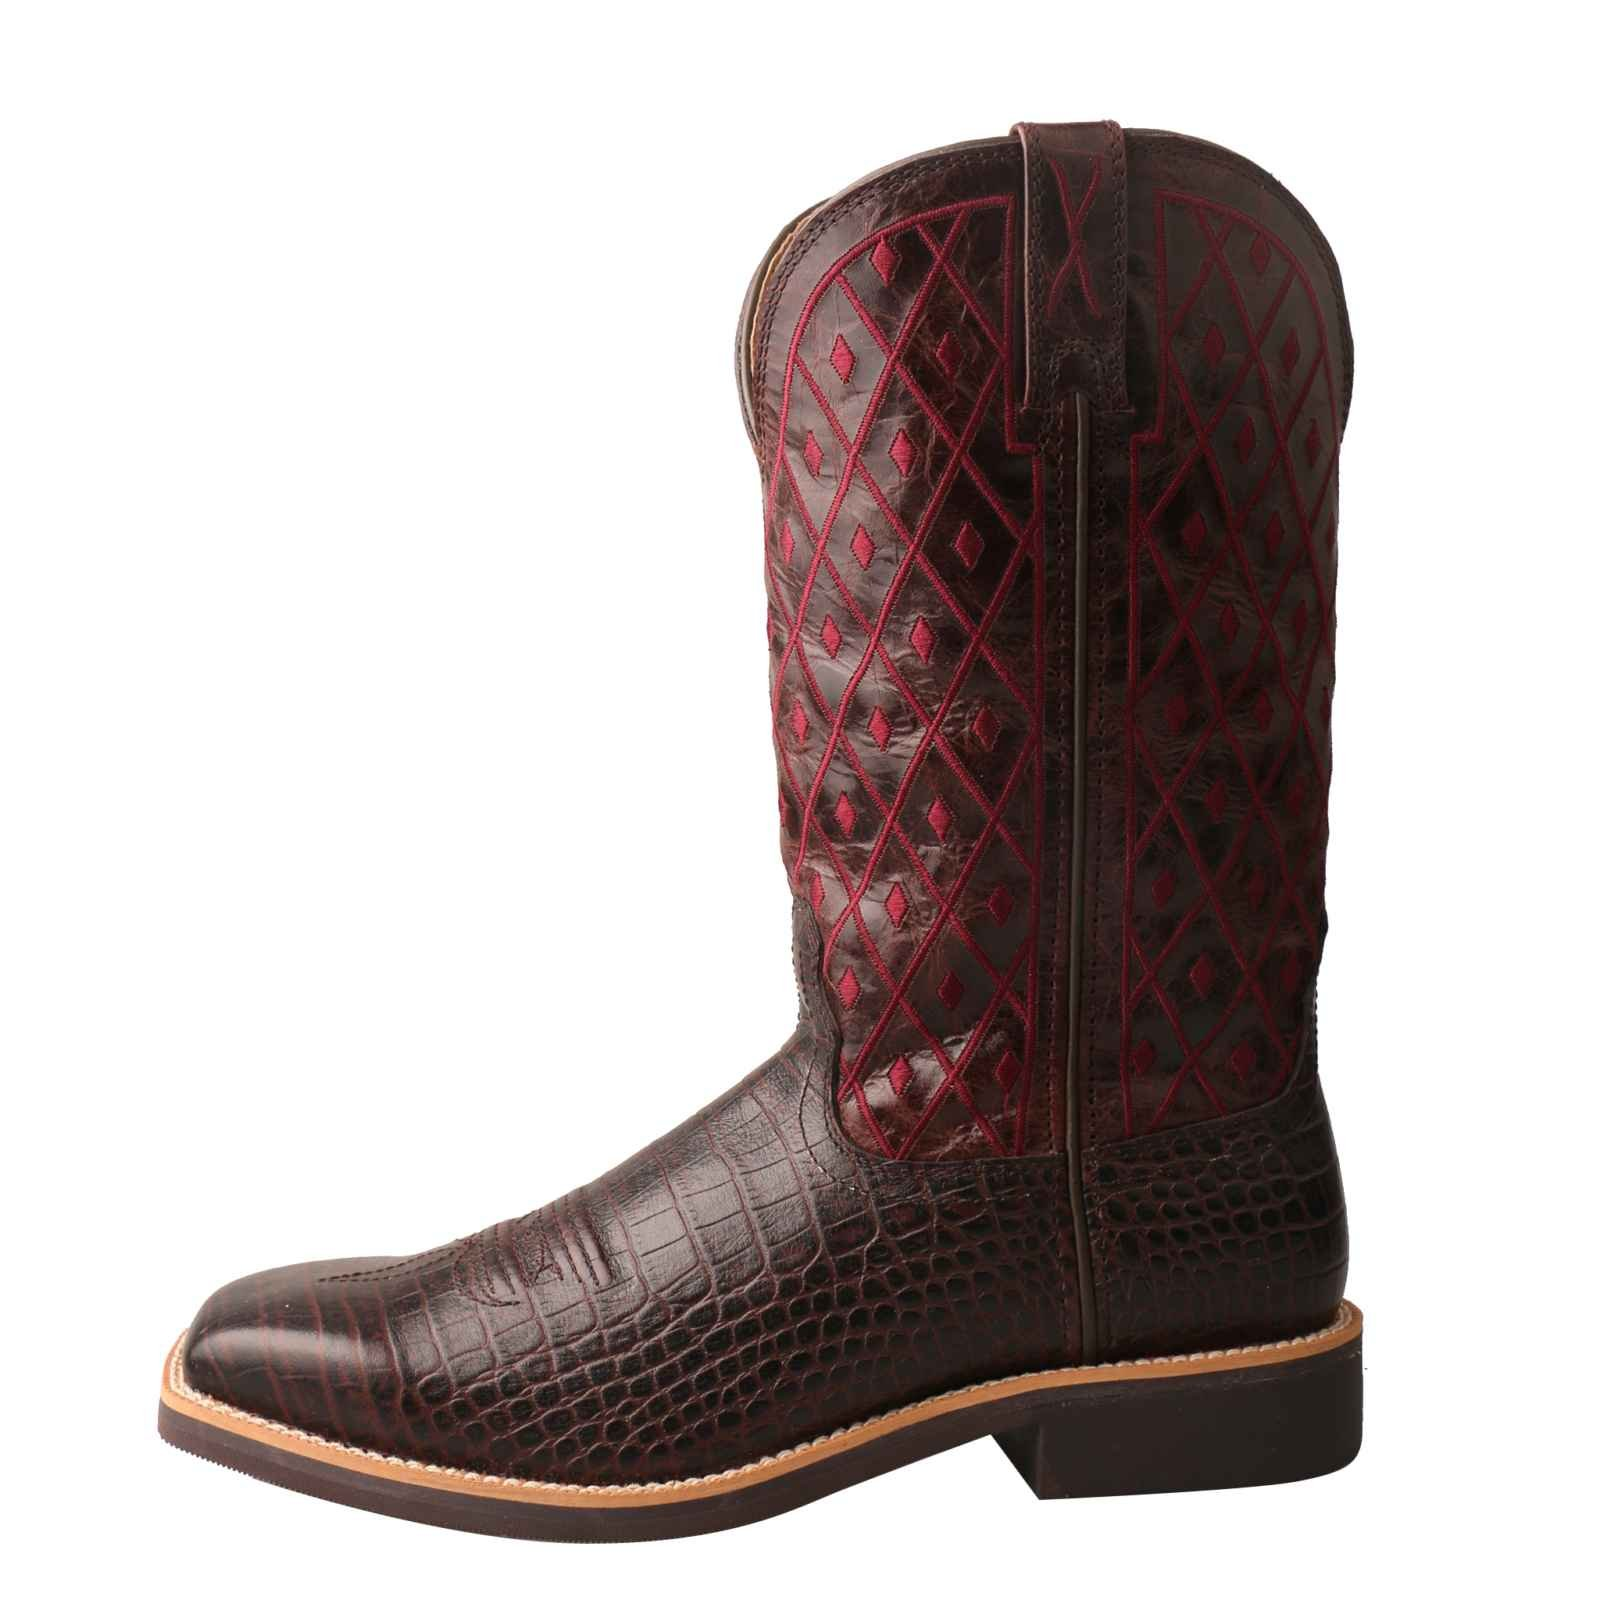 Twisted X Women's Top Hand Caiman Print Square Toe Cowgirl Boots (6.5) by Twisted X (Image #5)